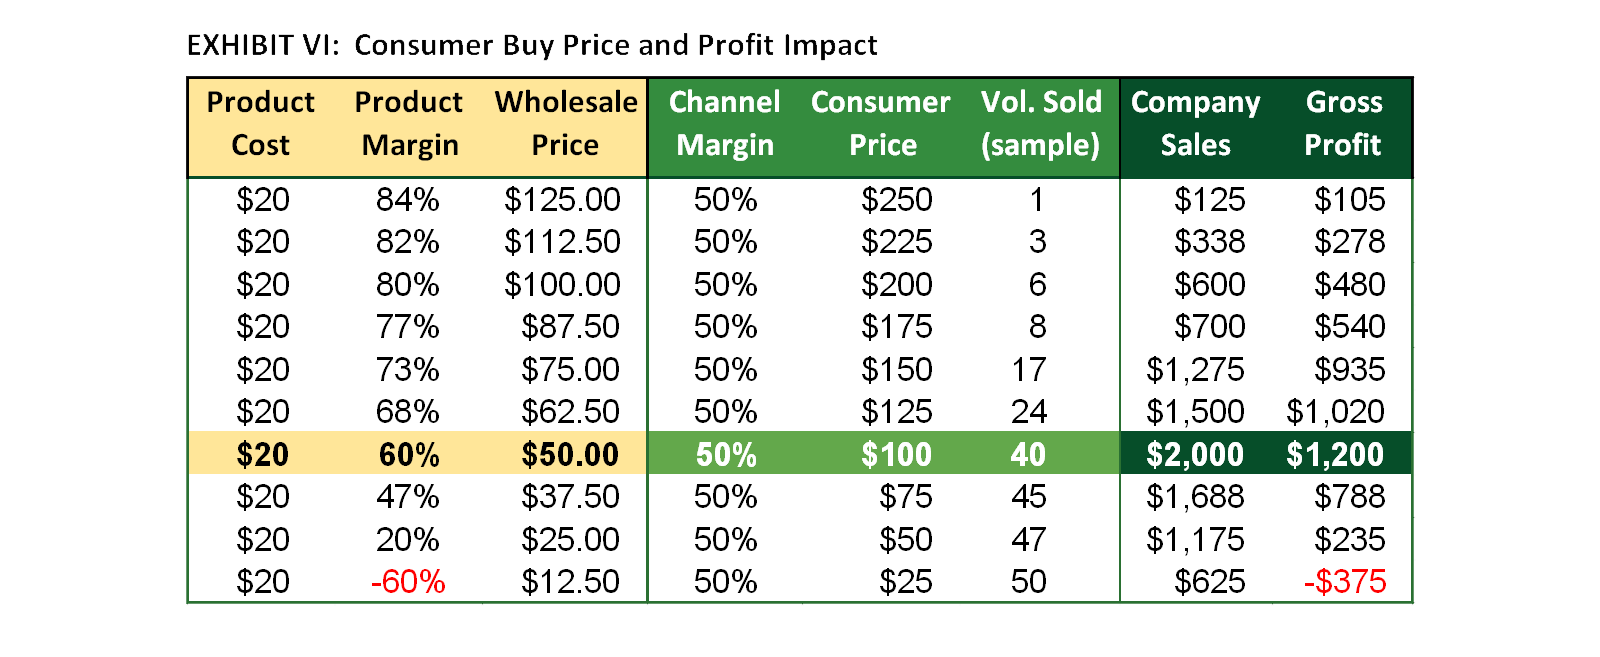 Exhibit VI: Consumer Buy Price and Profit Impact